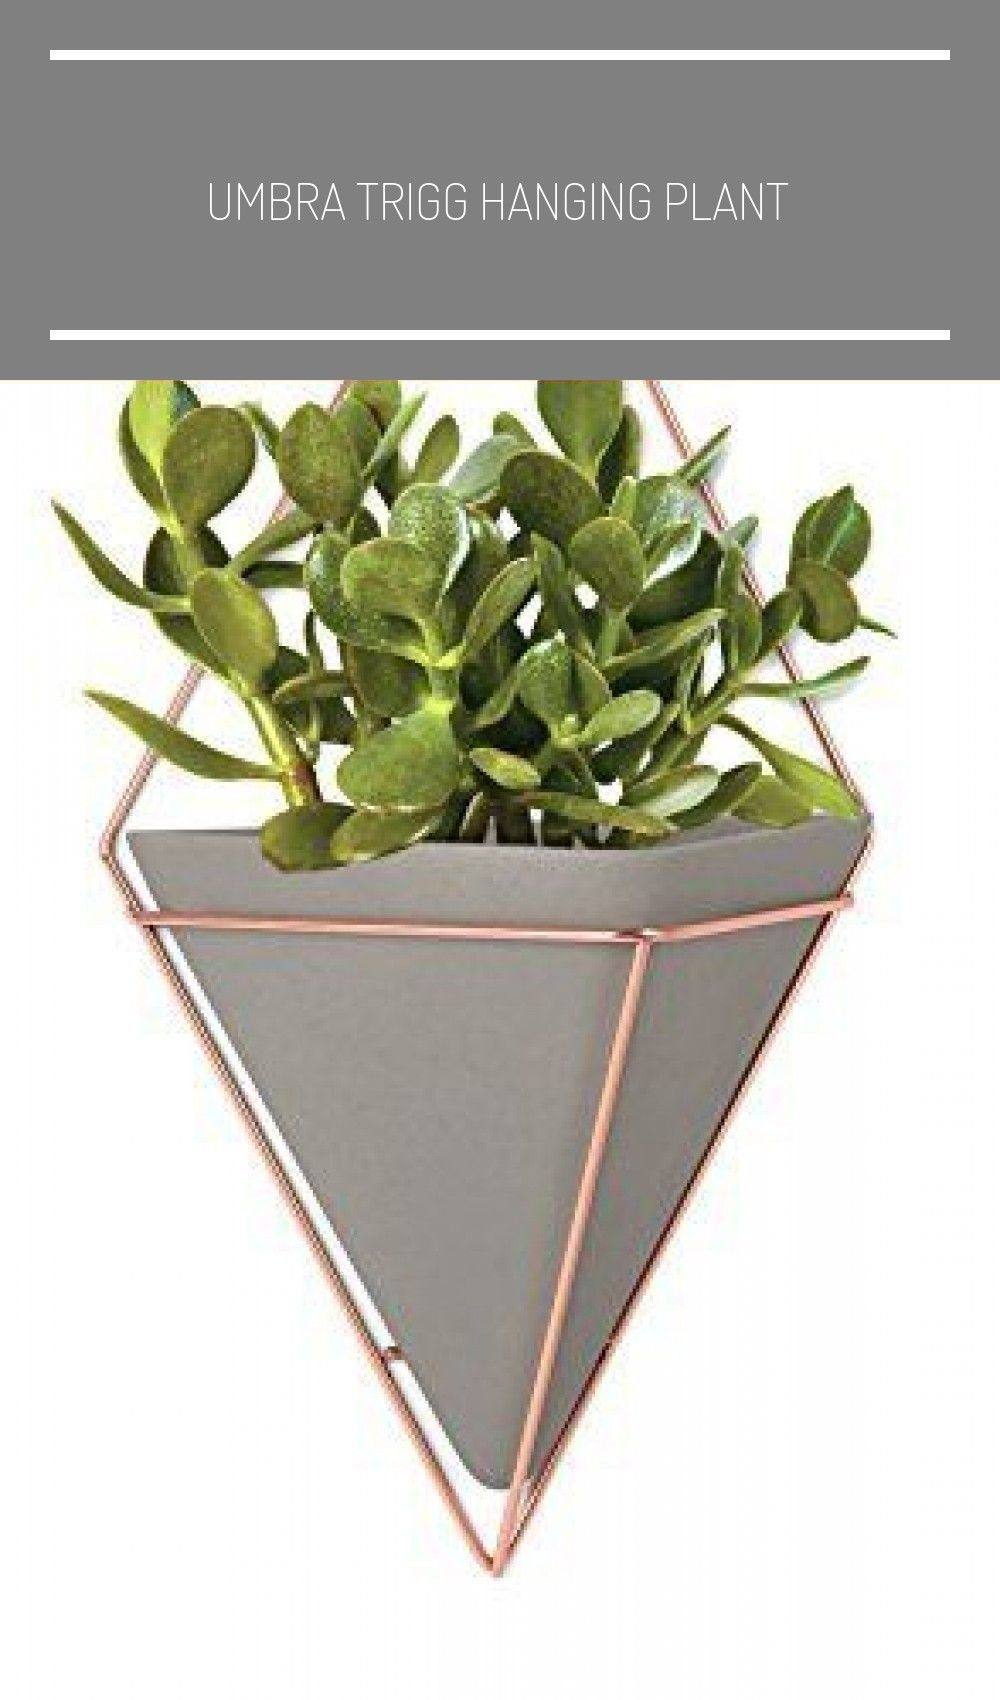 Umbra Trigg Hanging Planter Vase Geometric Wall Decor Container Great For Succulent Plants Air Plant Mini Cactus In 2020 Hanging Plants Hanging Planters Plants